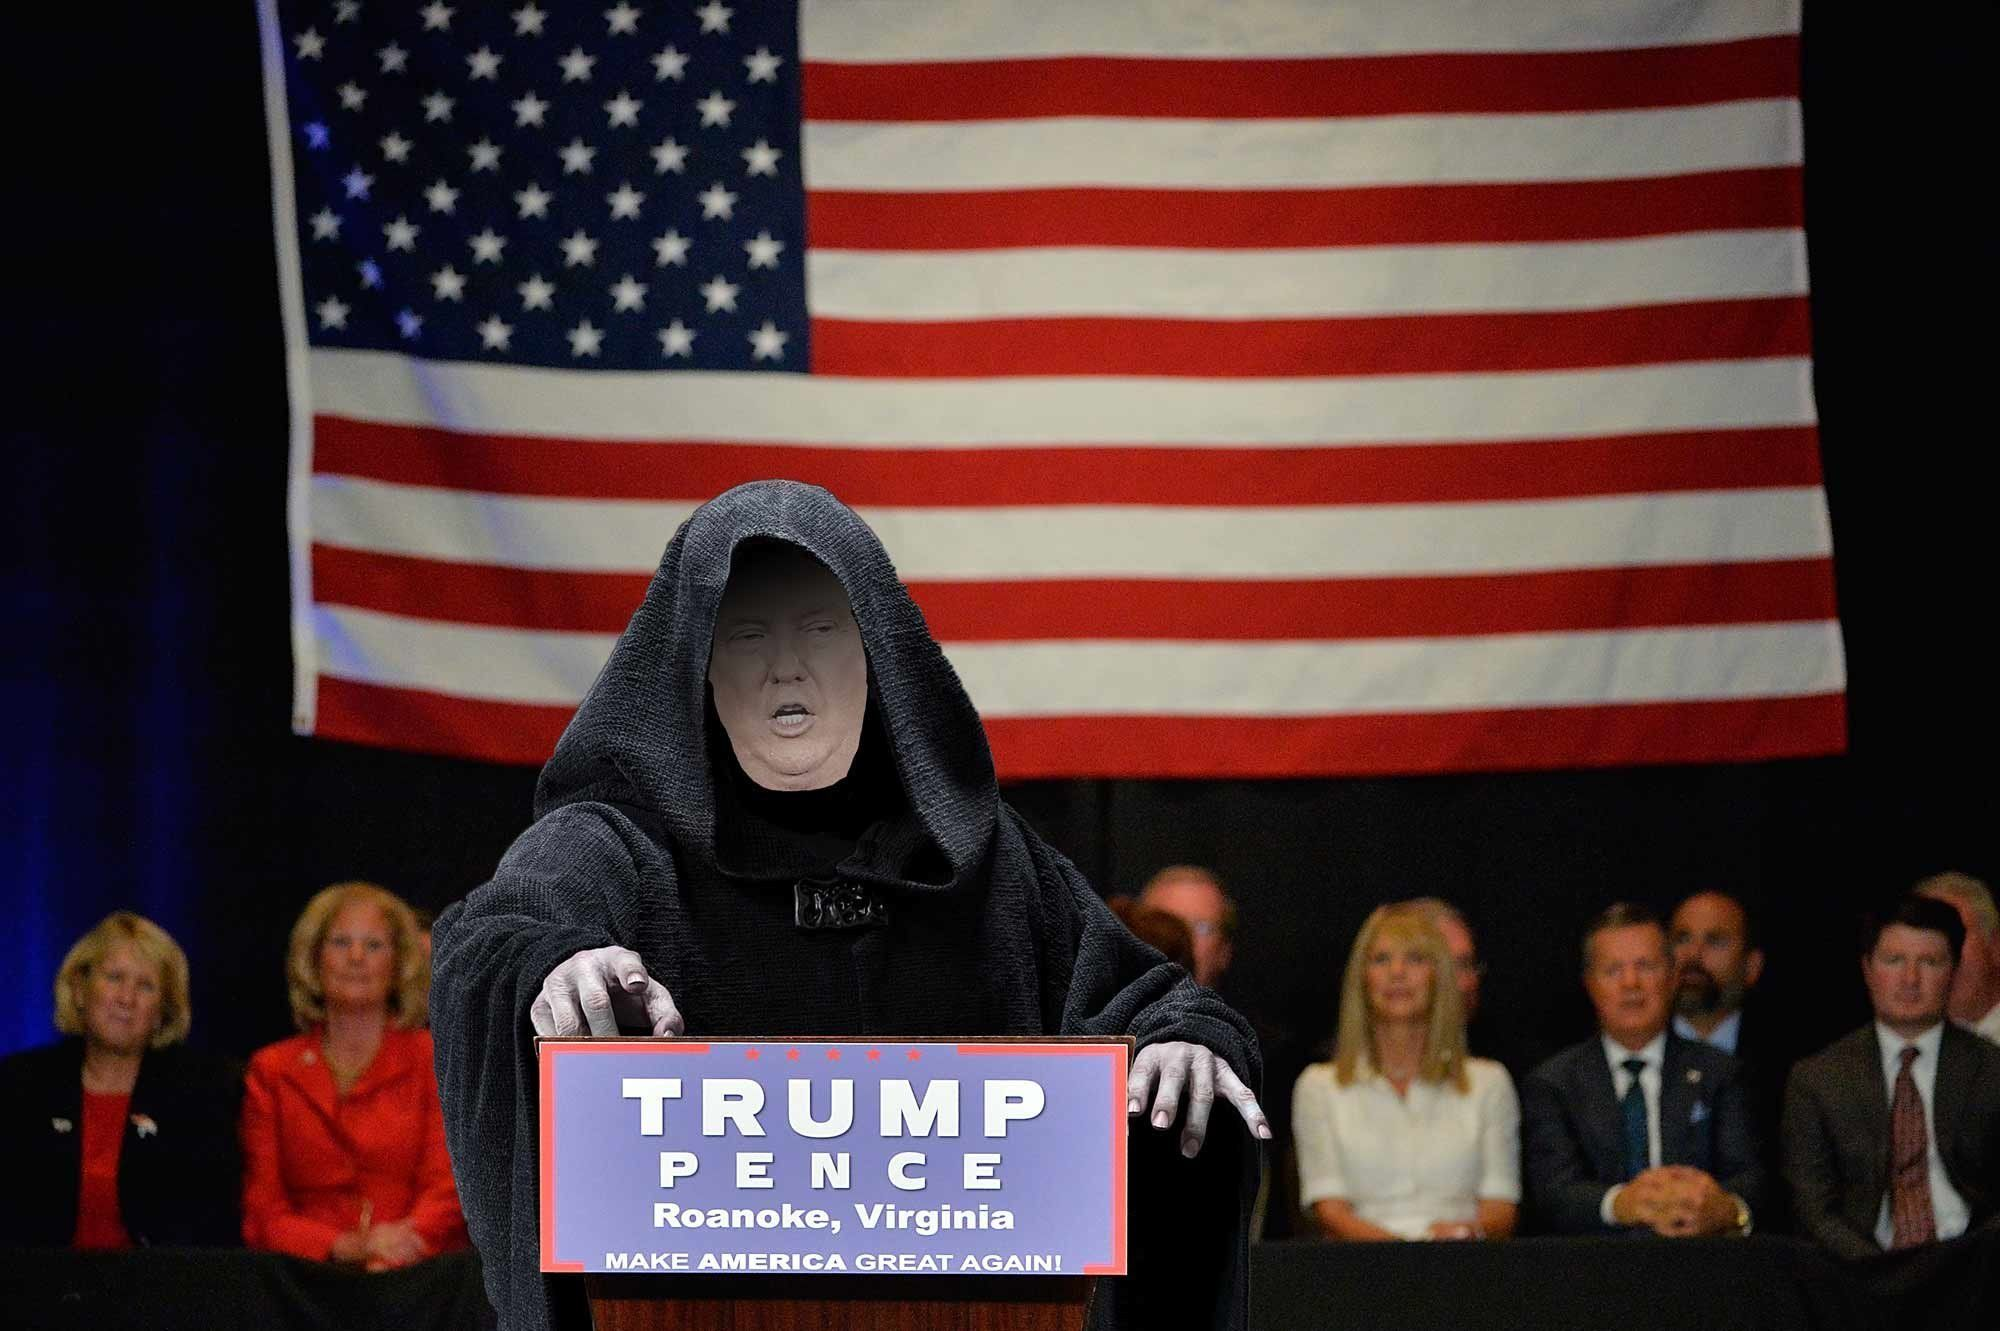 emperor palpatine is running for president